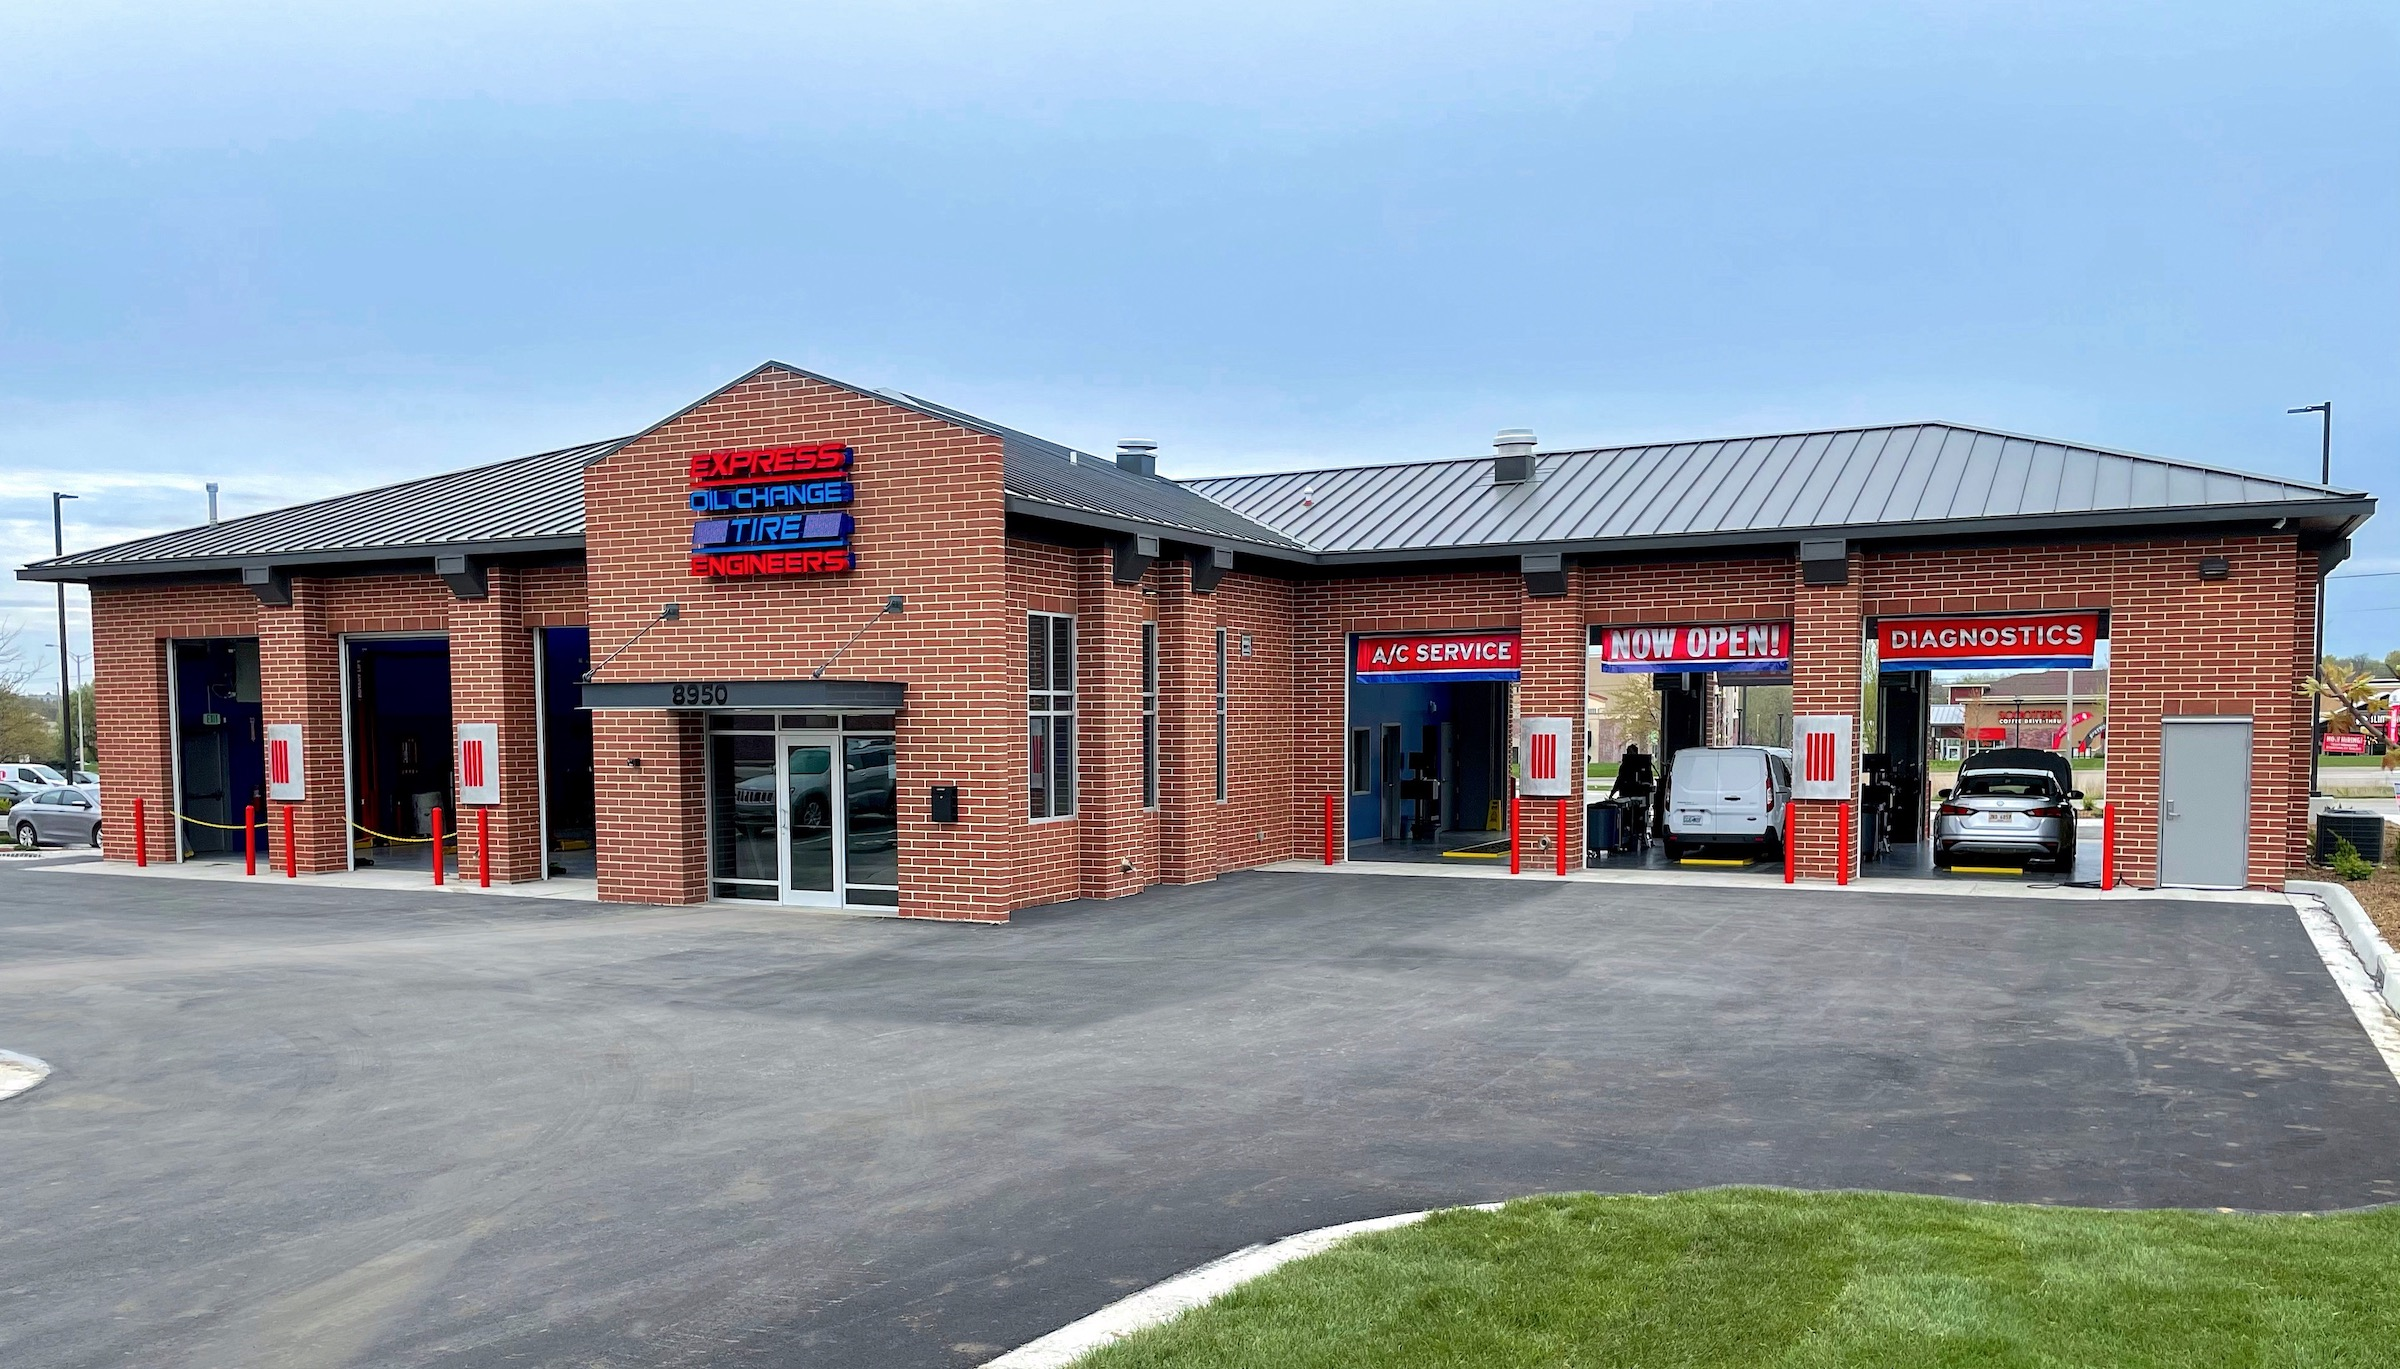 Express Oil Change & Tire Engineers at Overland Park, KS - Windham Park store